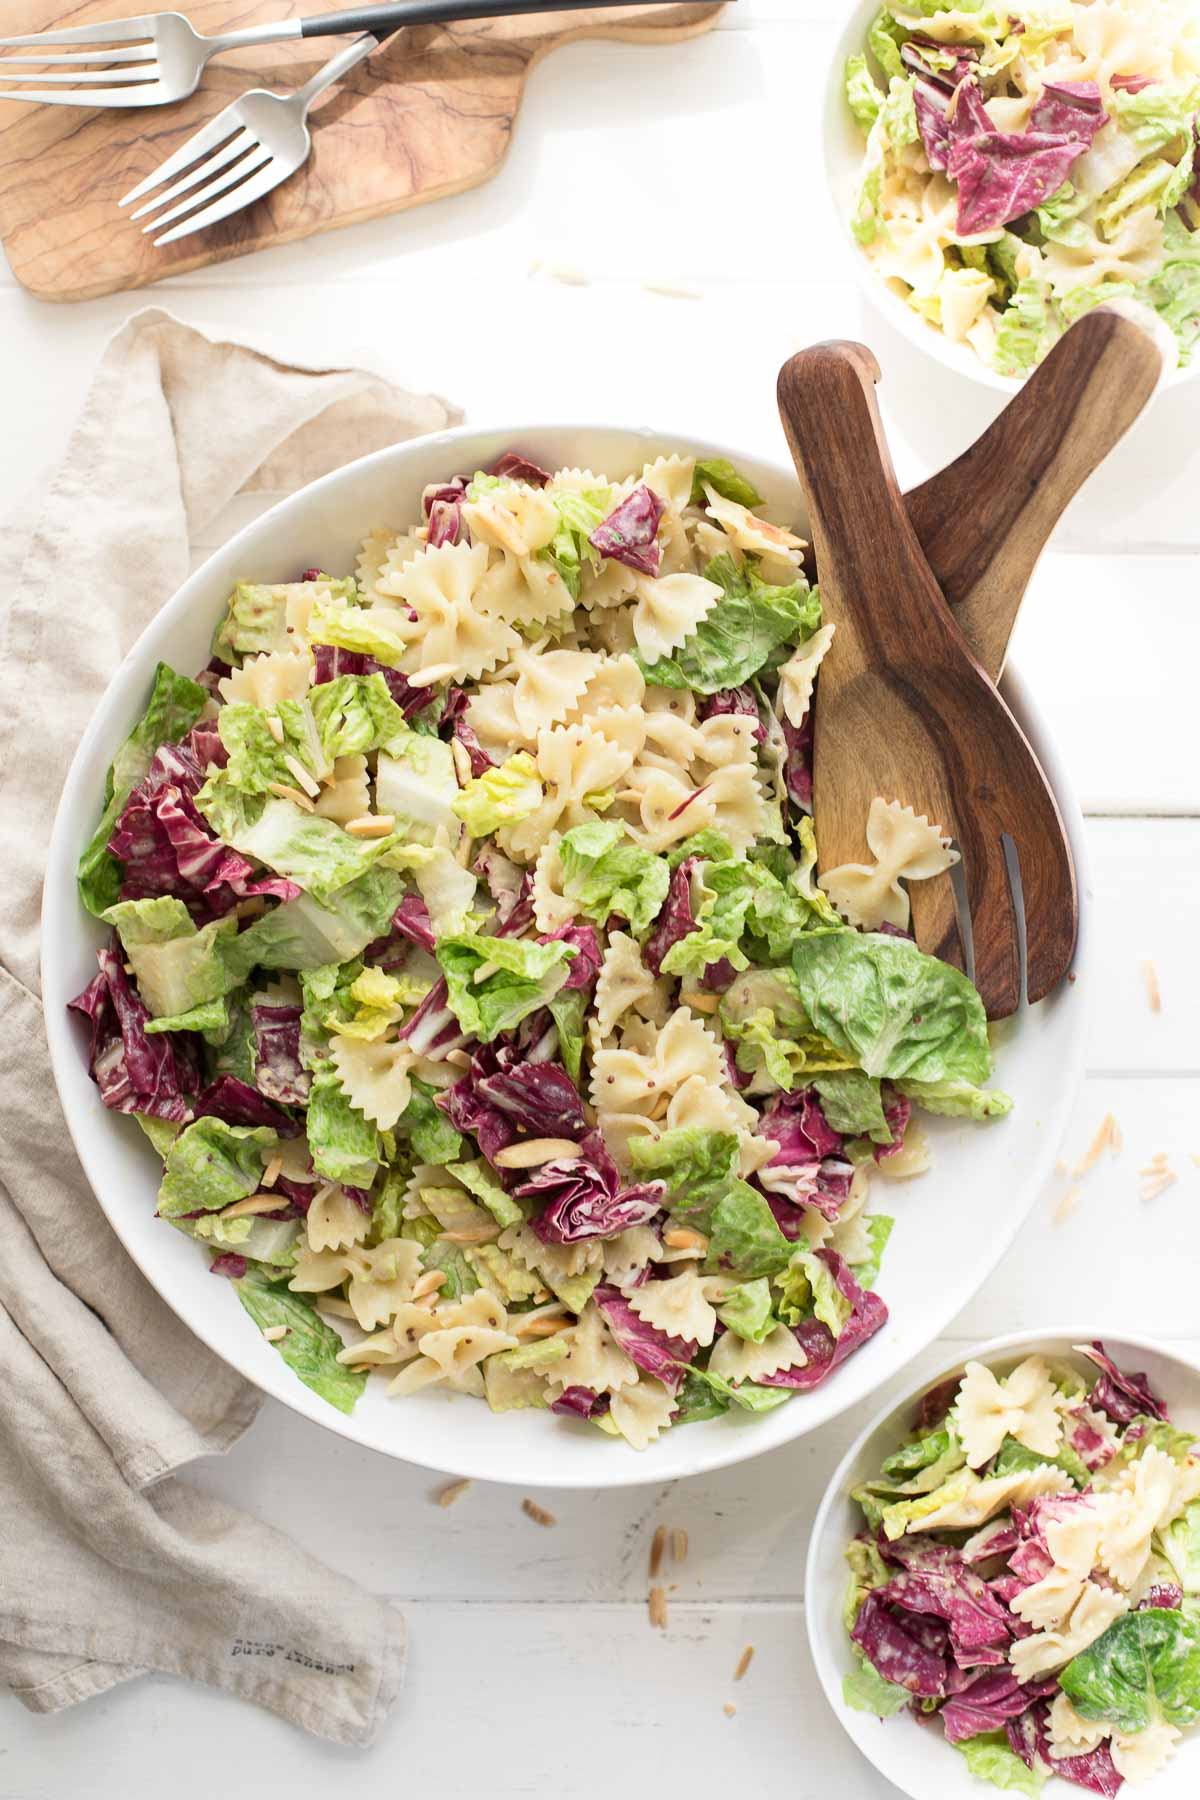 Caesar Pasta Salat with almonds, tahini dressing (vegan)